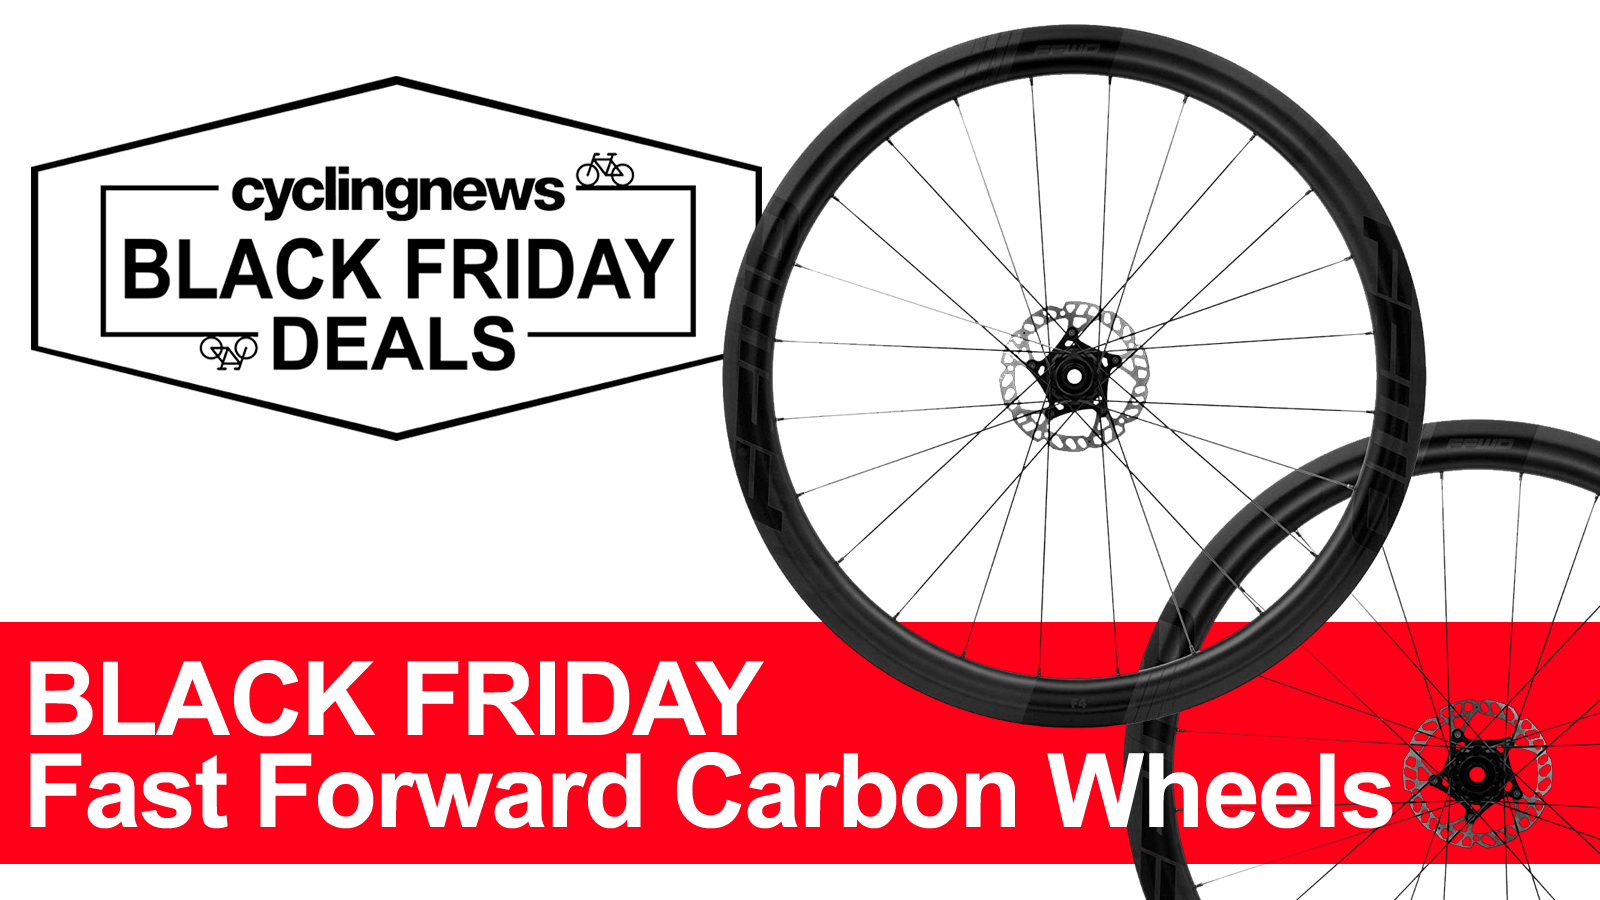 Fast Forward carbon wheels up to 52% off in Black Friday